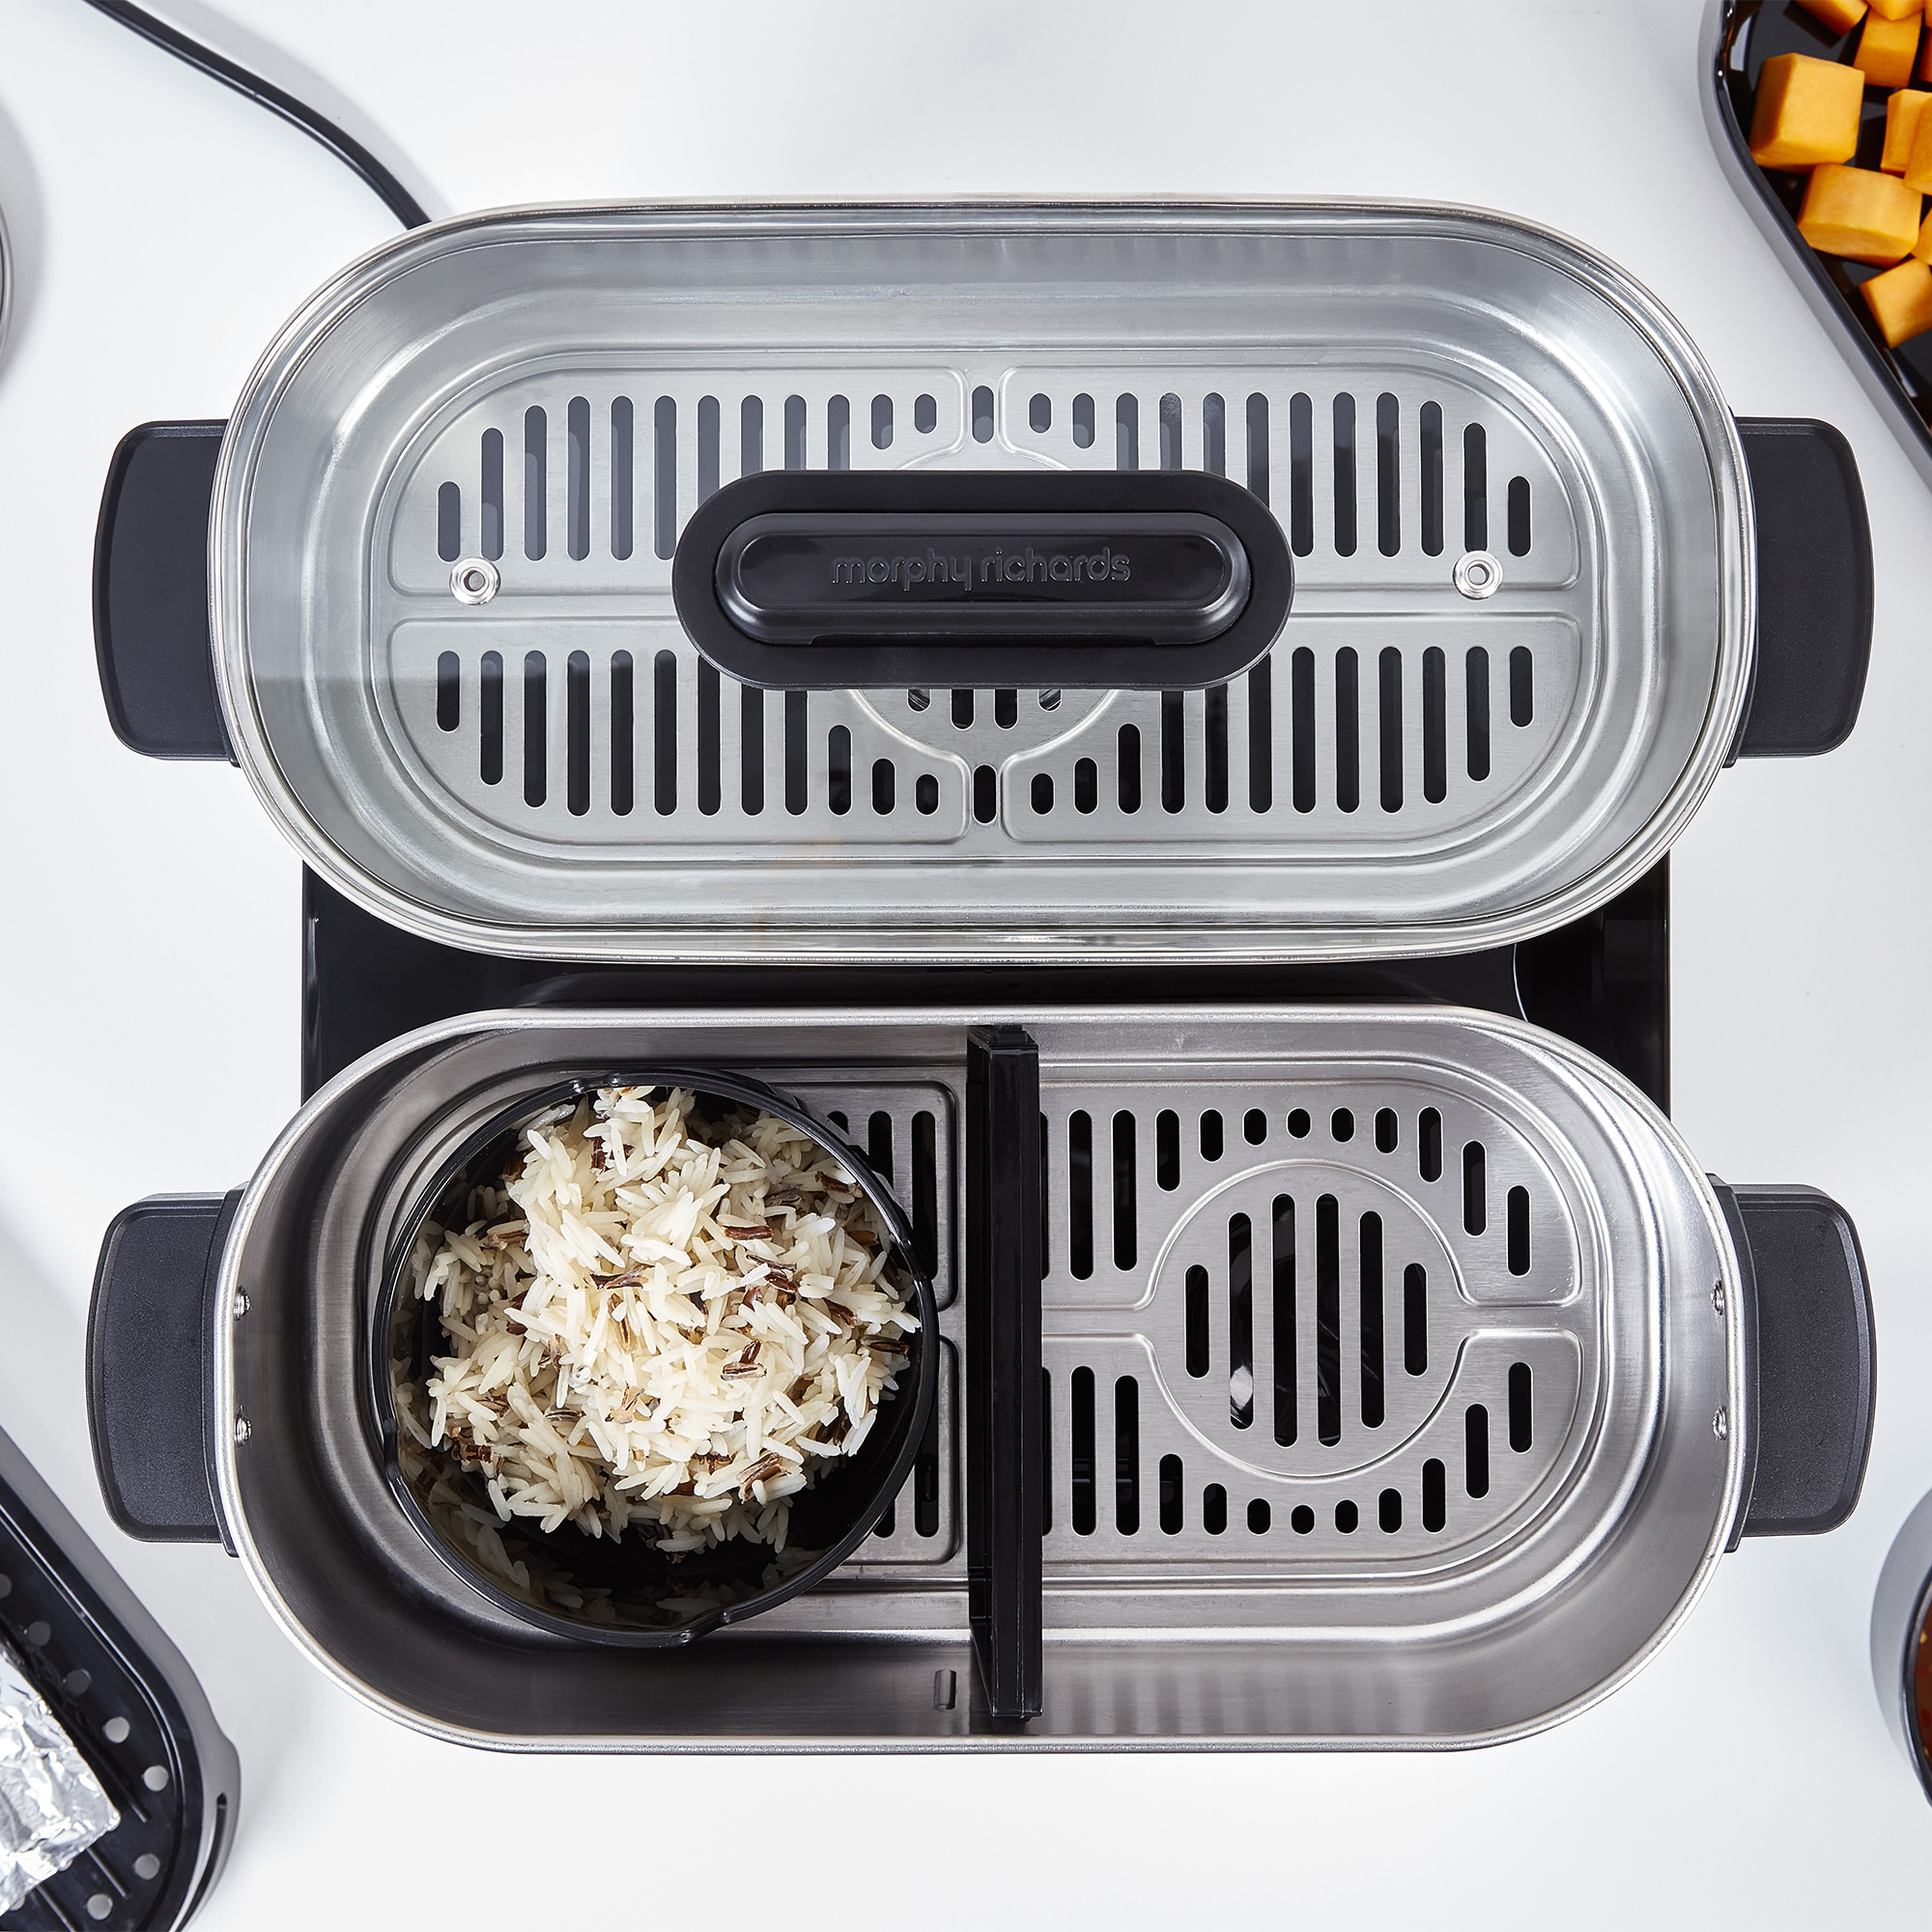 Morphy Richards Intellisteam Electric Food Steamer image #5